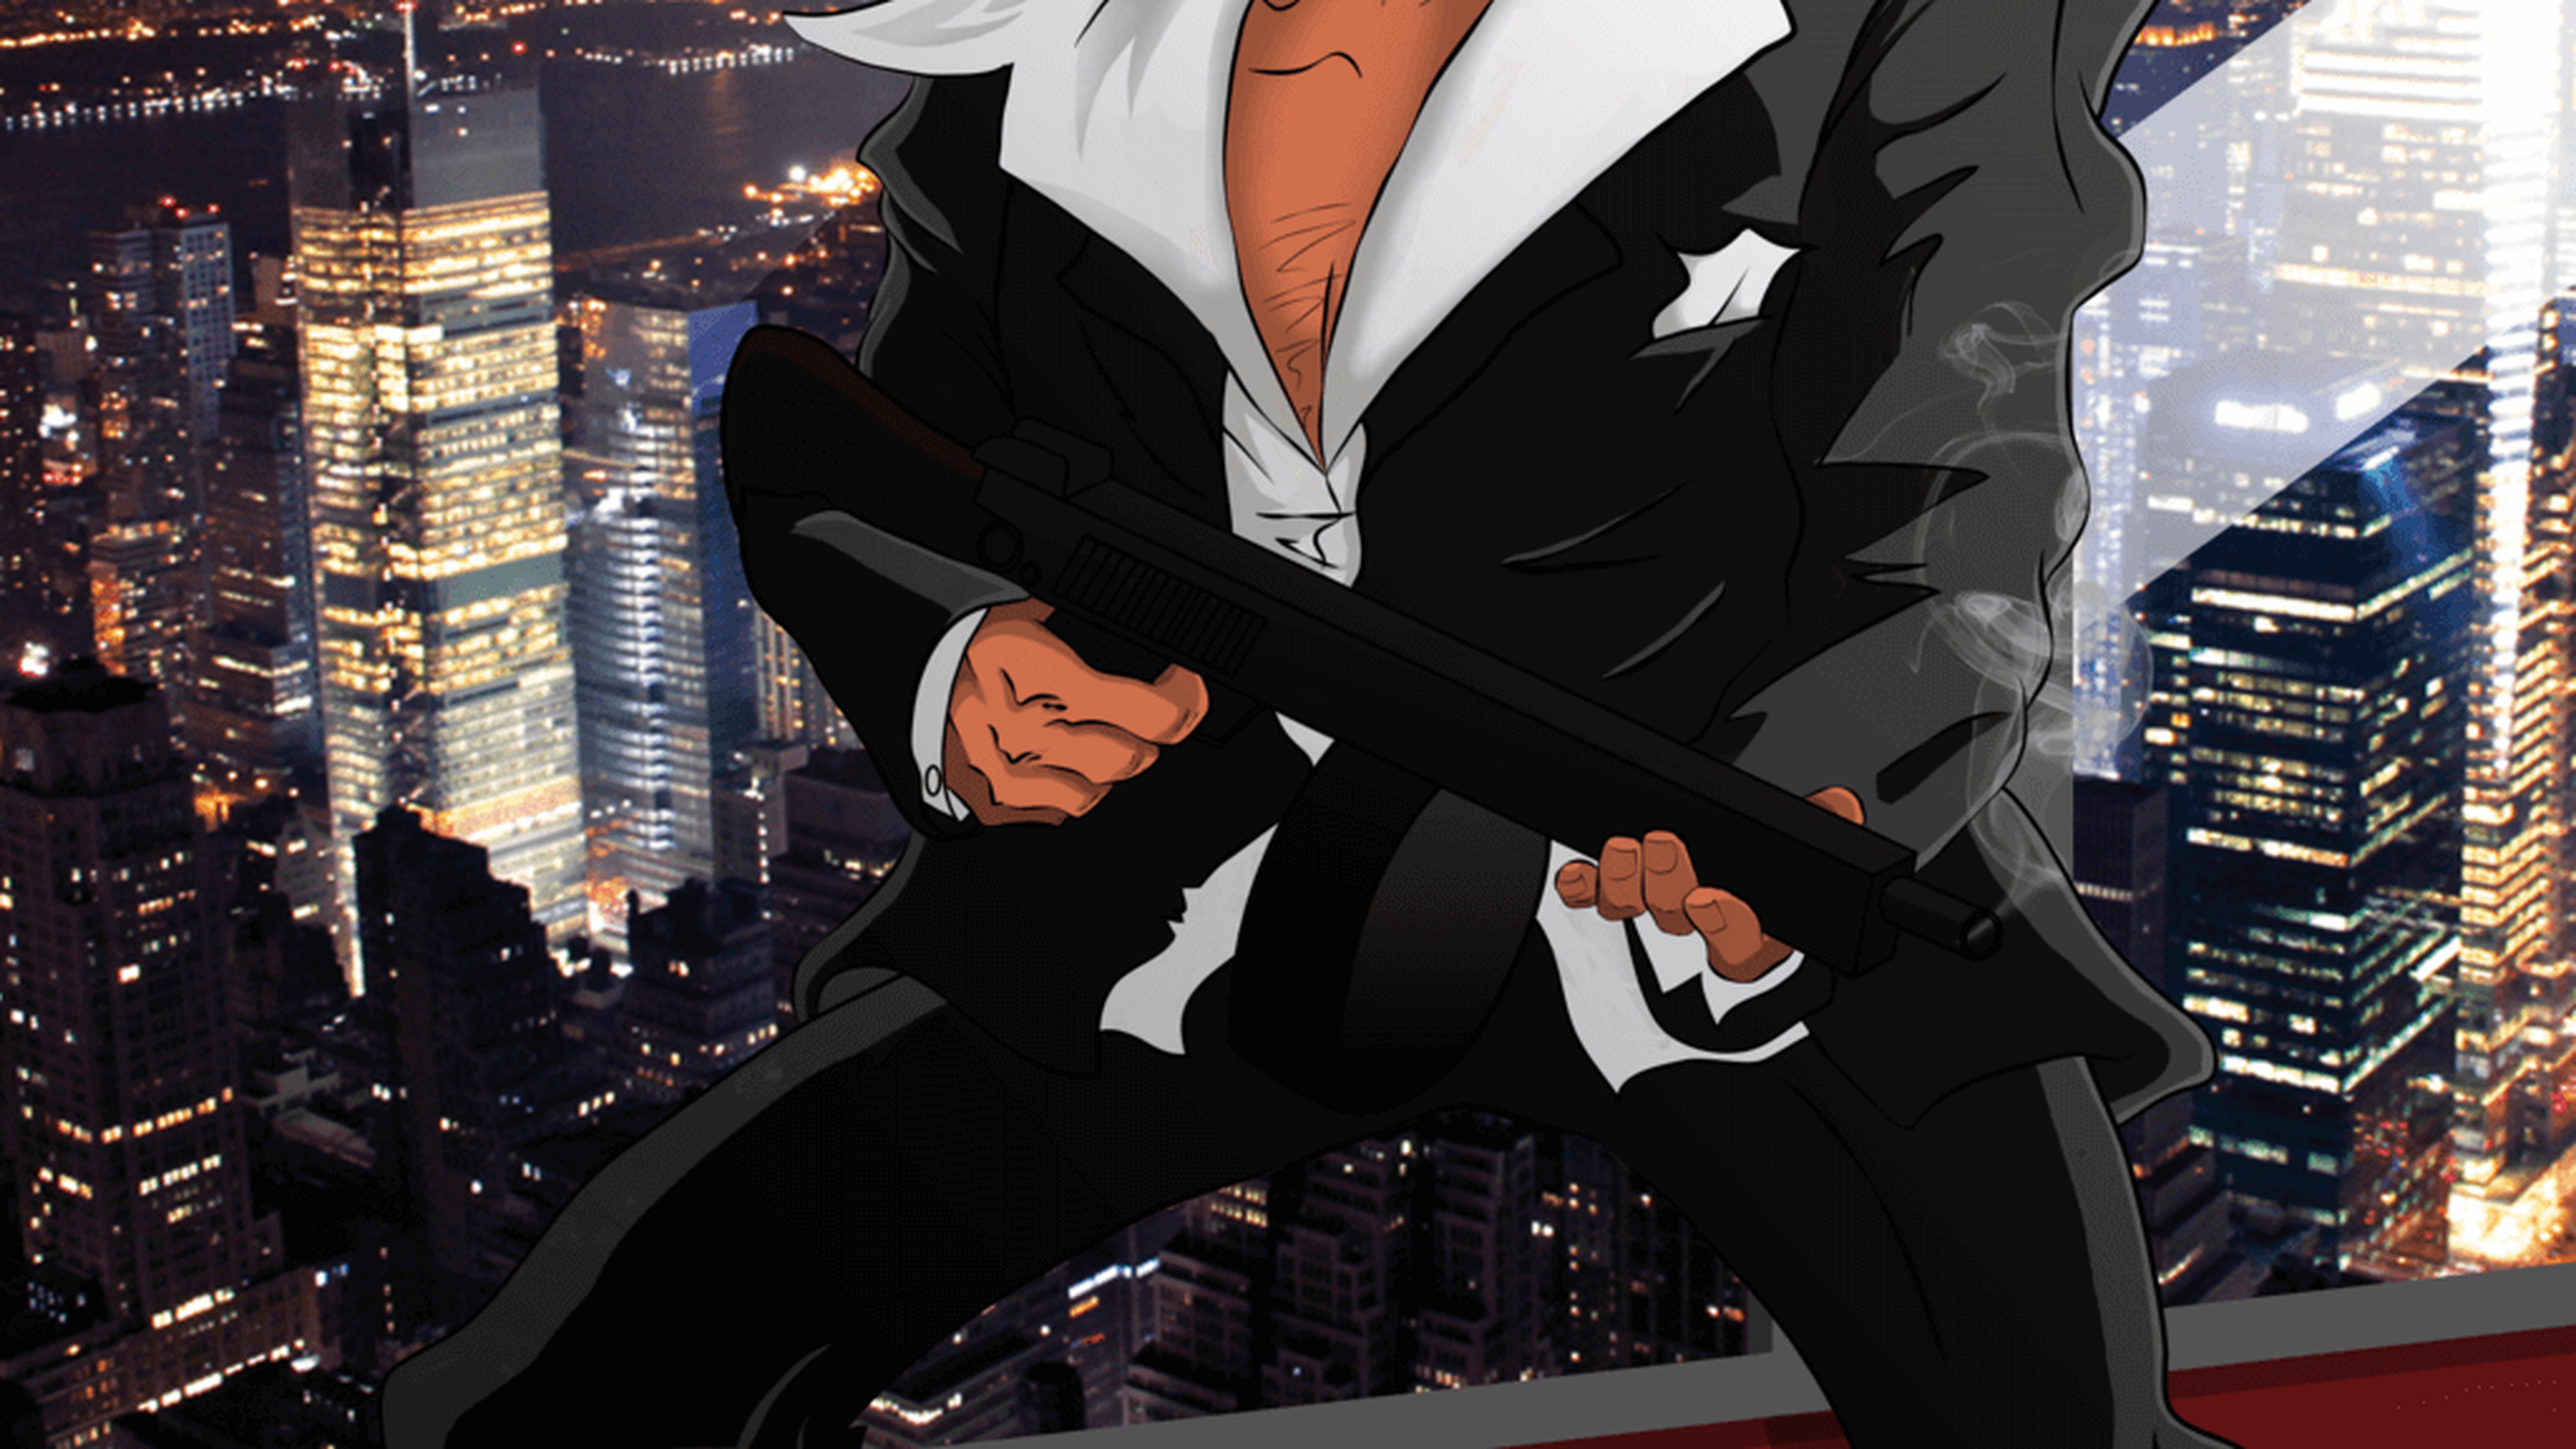 Res: 3840x2160, Gangsta 07 by Alisian Source · 4K UHD 16 9 Gangster Anime Wallpaper  Gangster Wallpaper for Phone